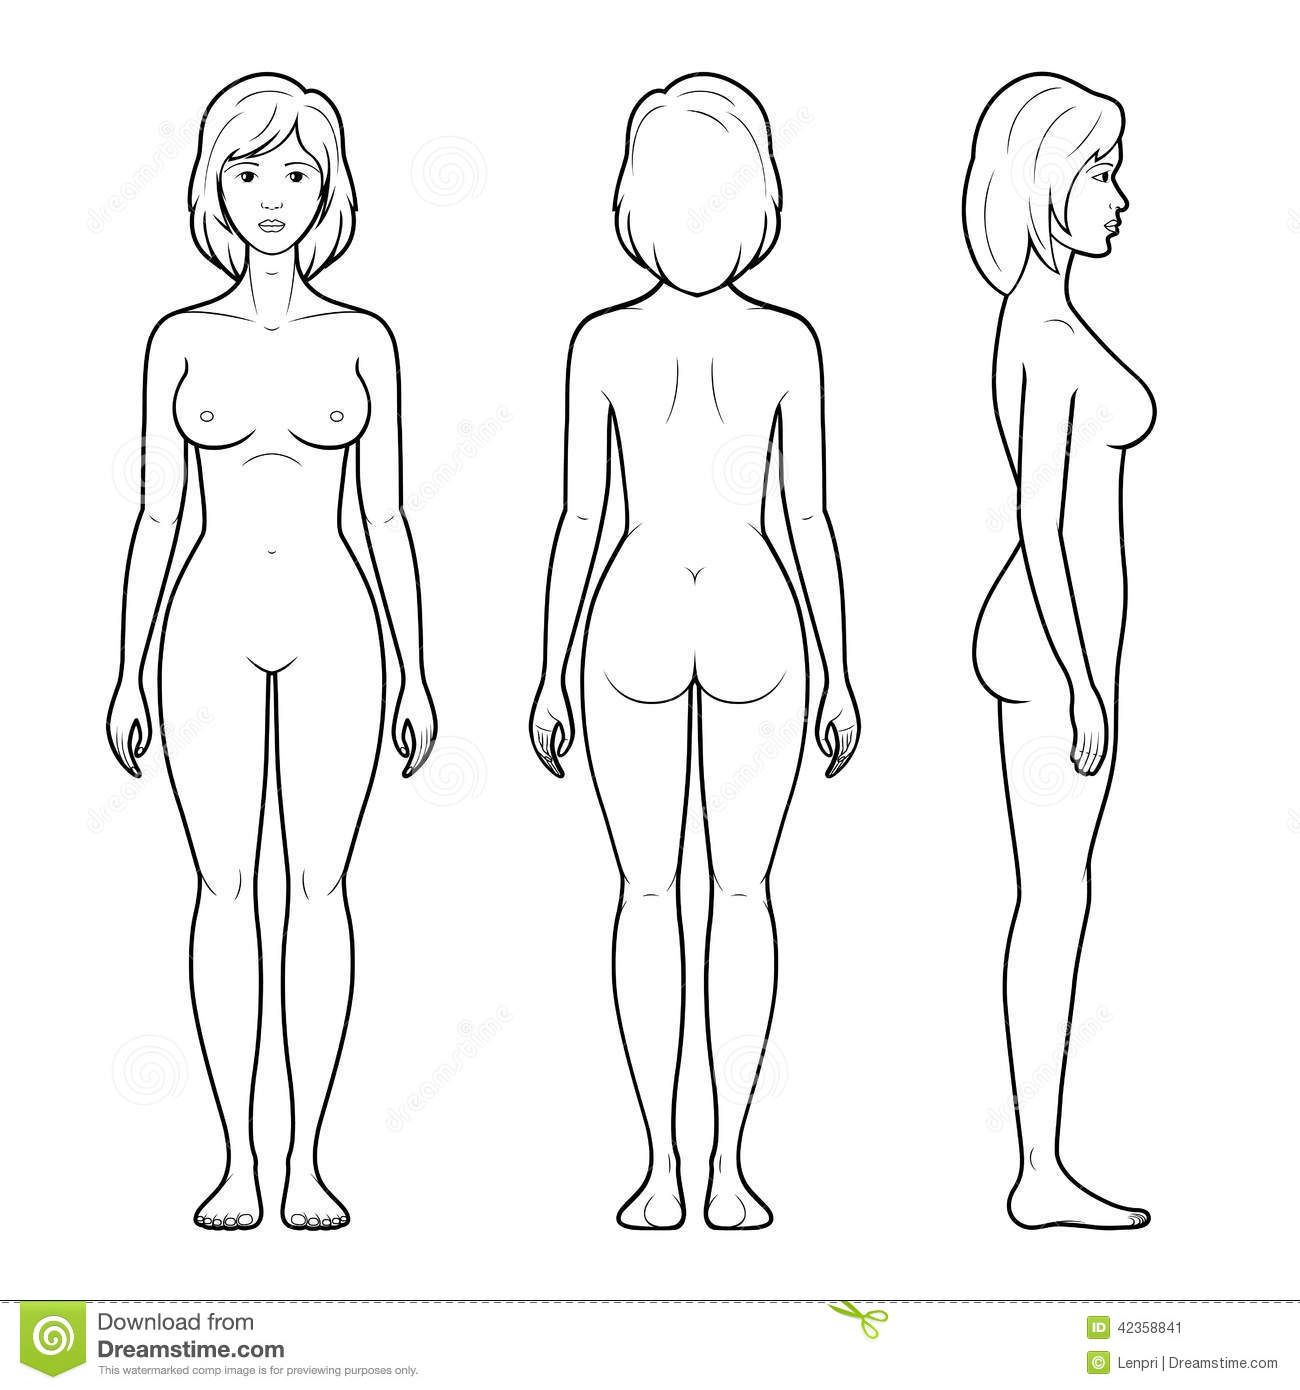 Images For > Female Human Body Outline Front And Back ...